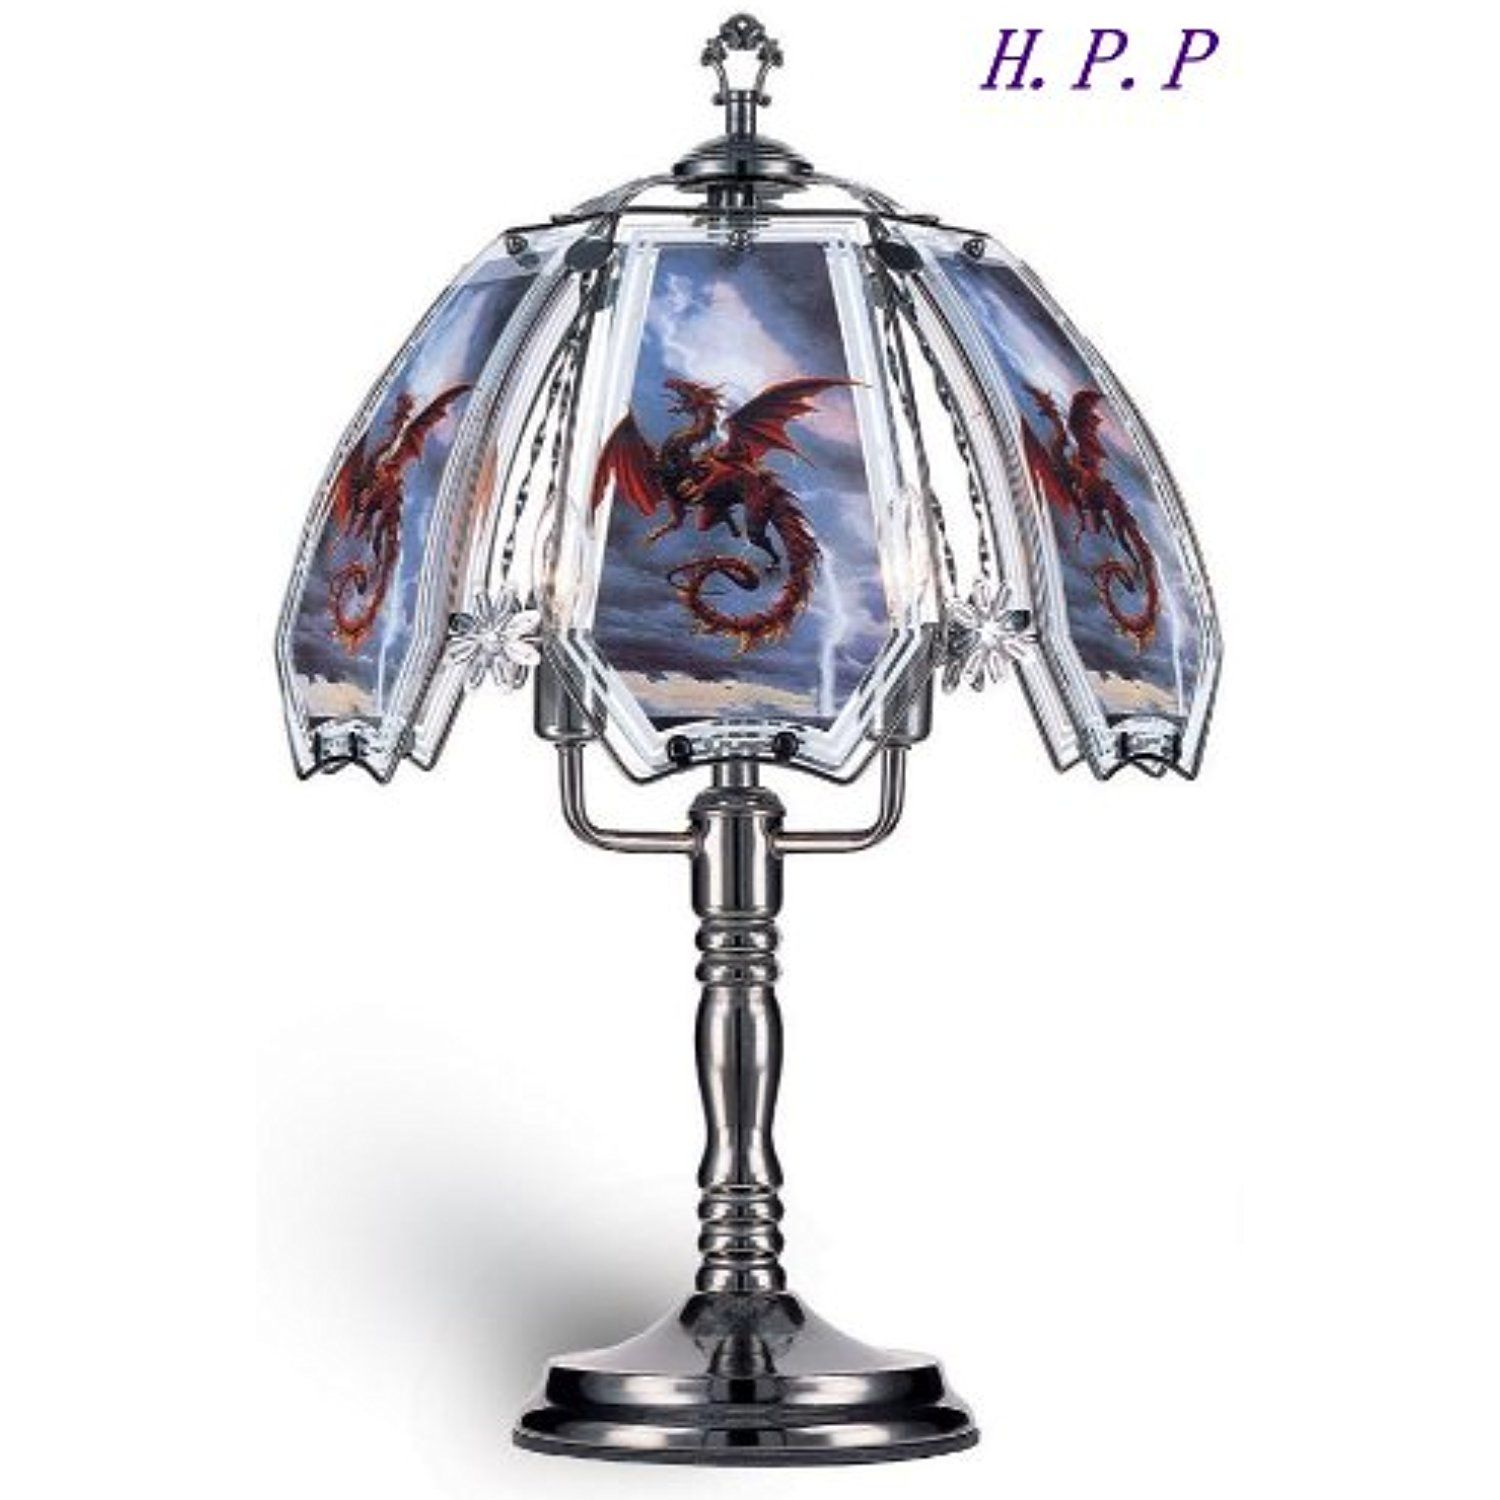 Hpp 235h new glass red dragon table lamp w dark chrome finish hpp 235h new glass red dragon table lamp w dark chrome finish aloadofball Choice Image